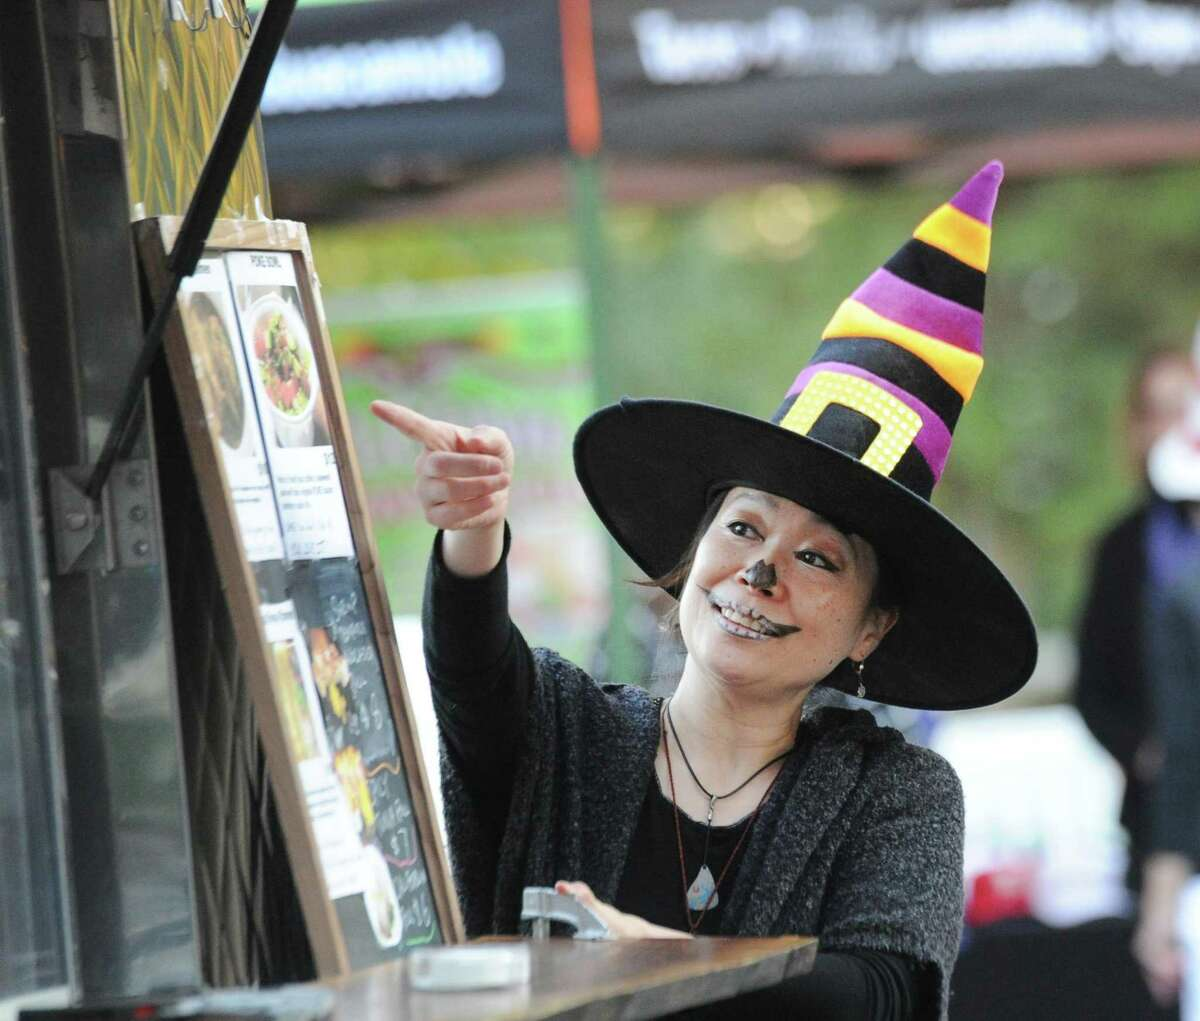 Yuki Nakamichi dressed as a witch during the